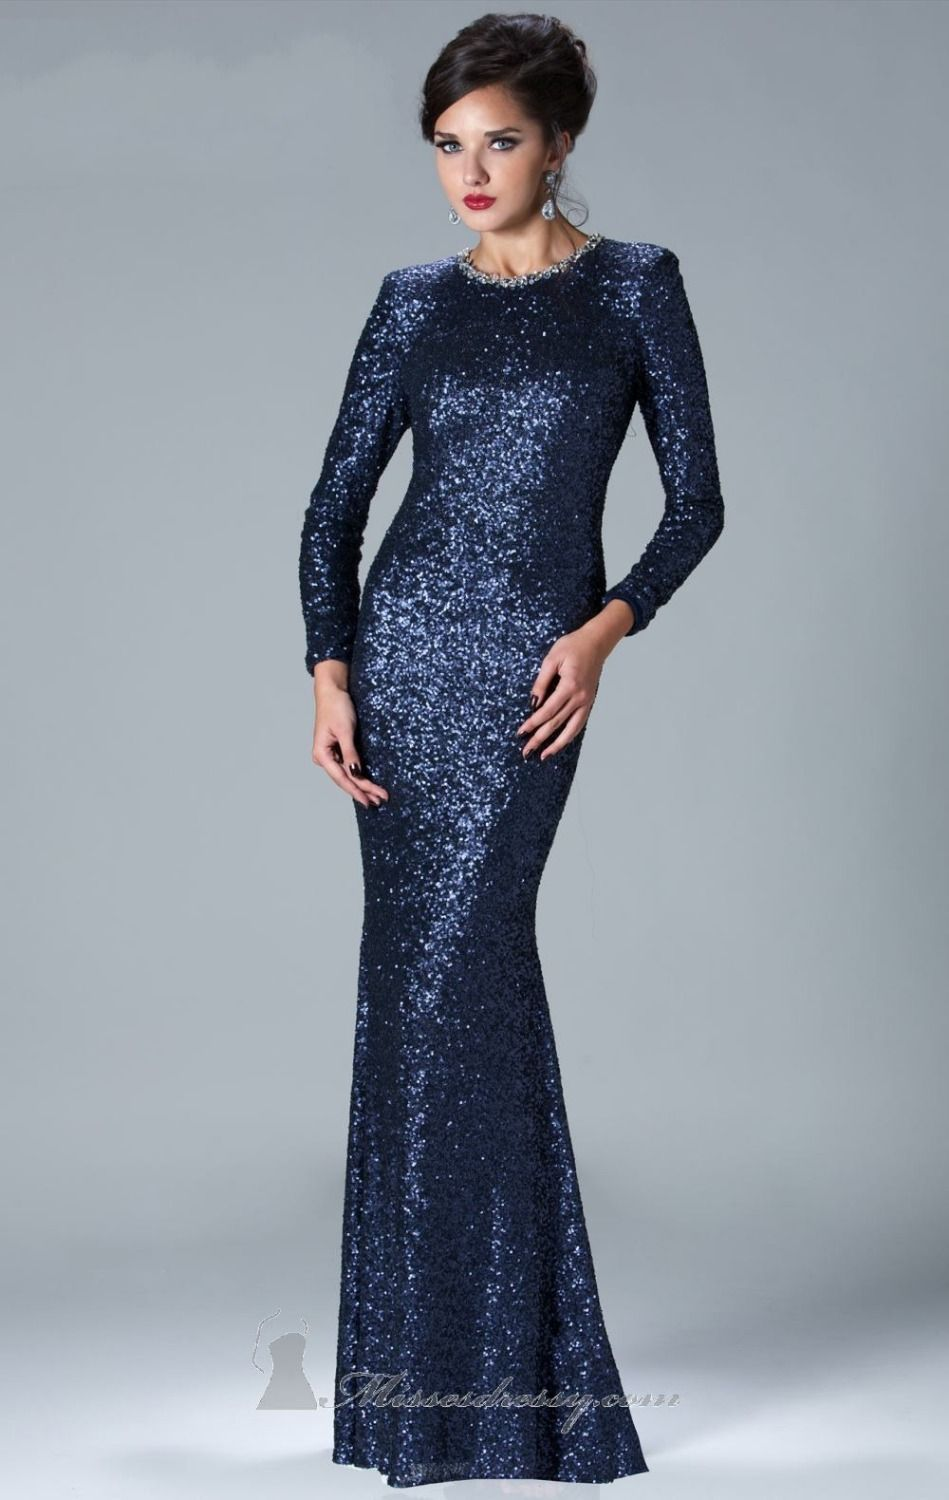 Pin by muppetje on Dresses | Pinterest | Sleeved dress, Sequins and ...